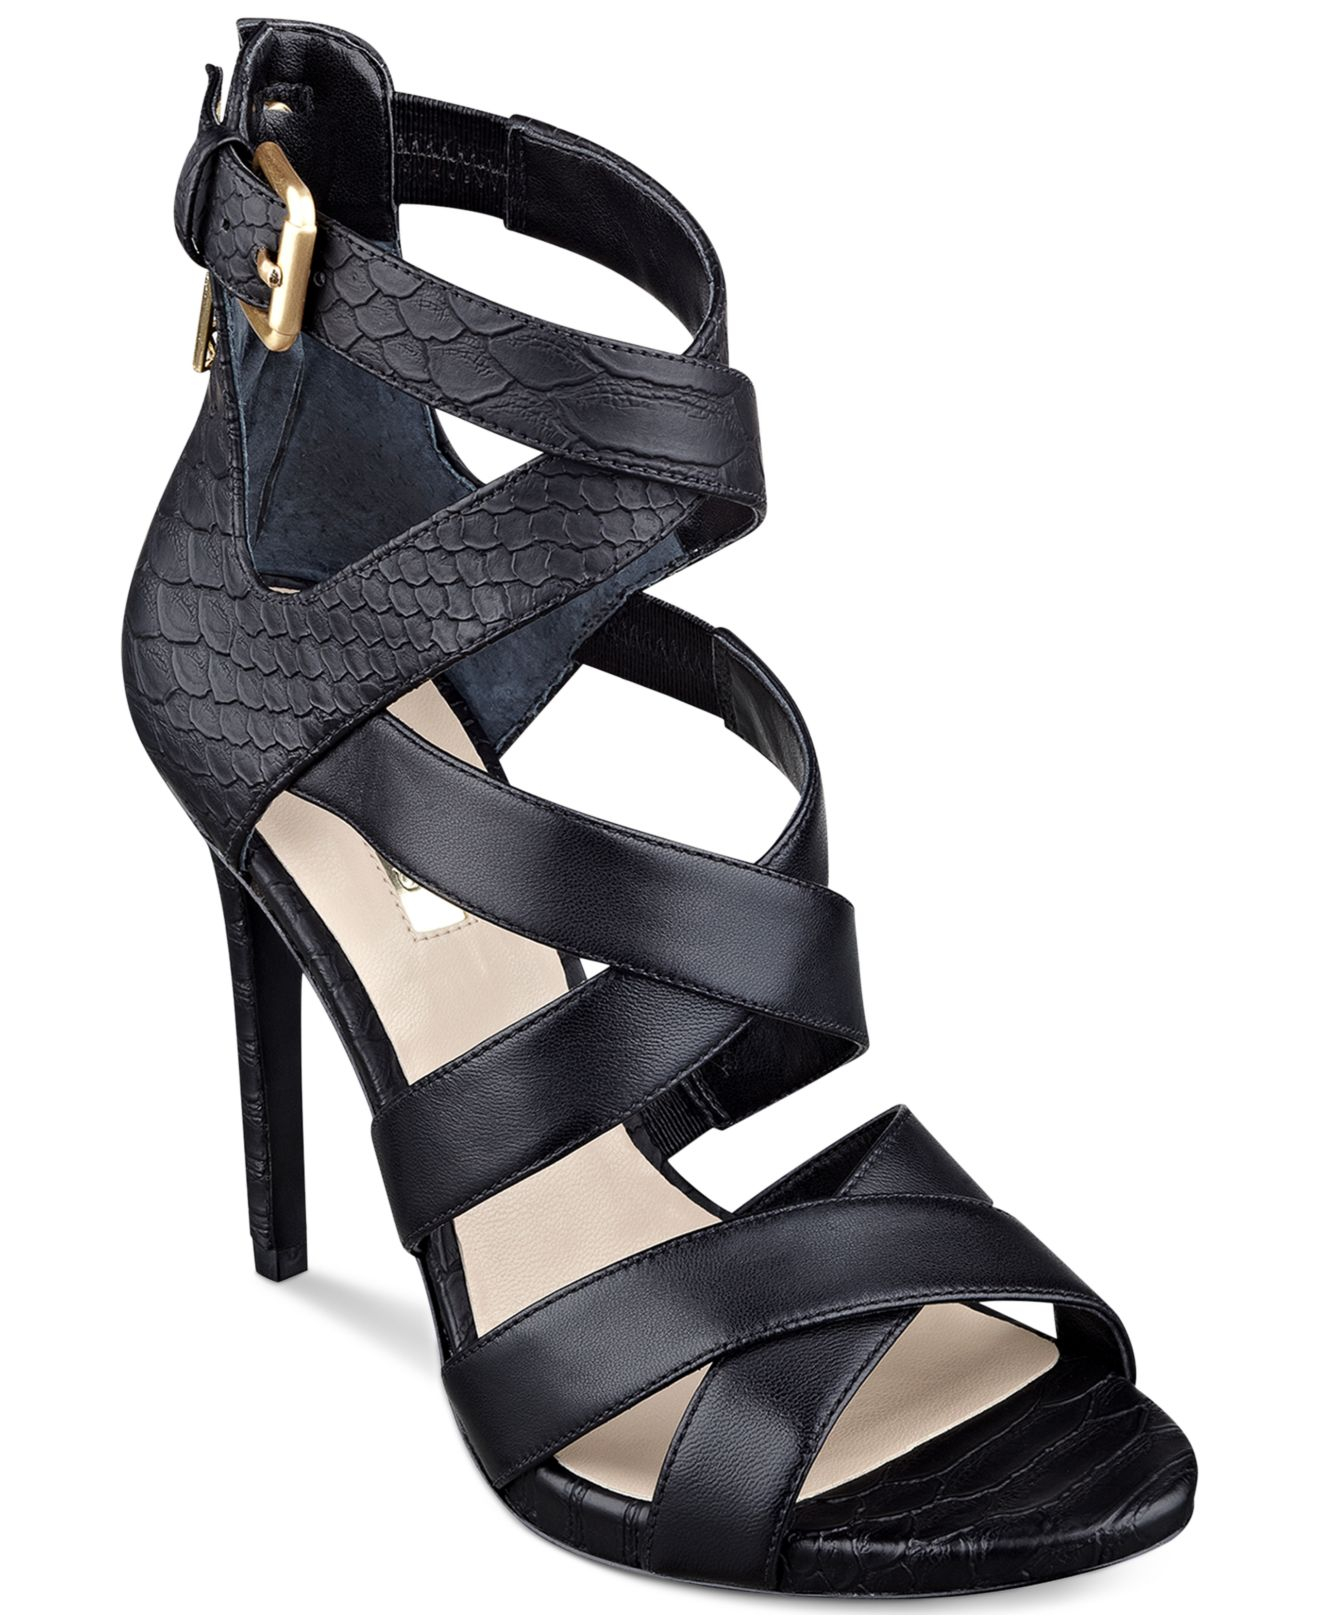 Guess Women S Abby Strappy Dress Sandals In Black Lyst